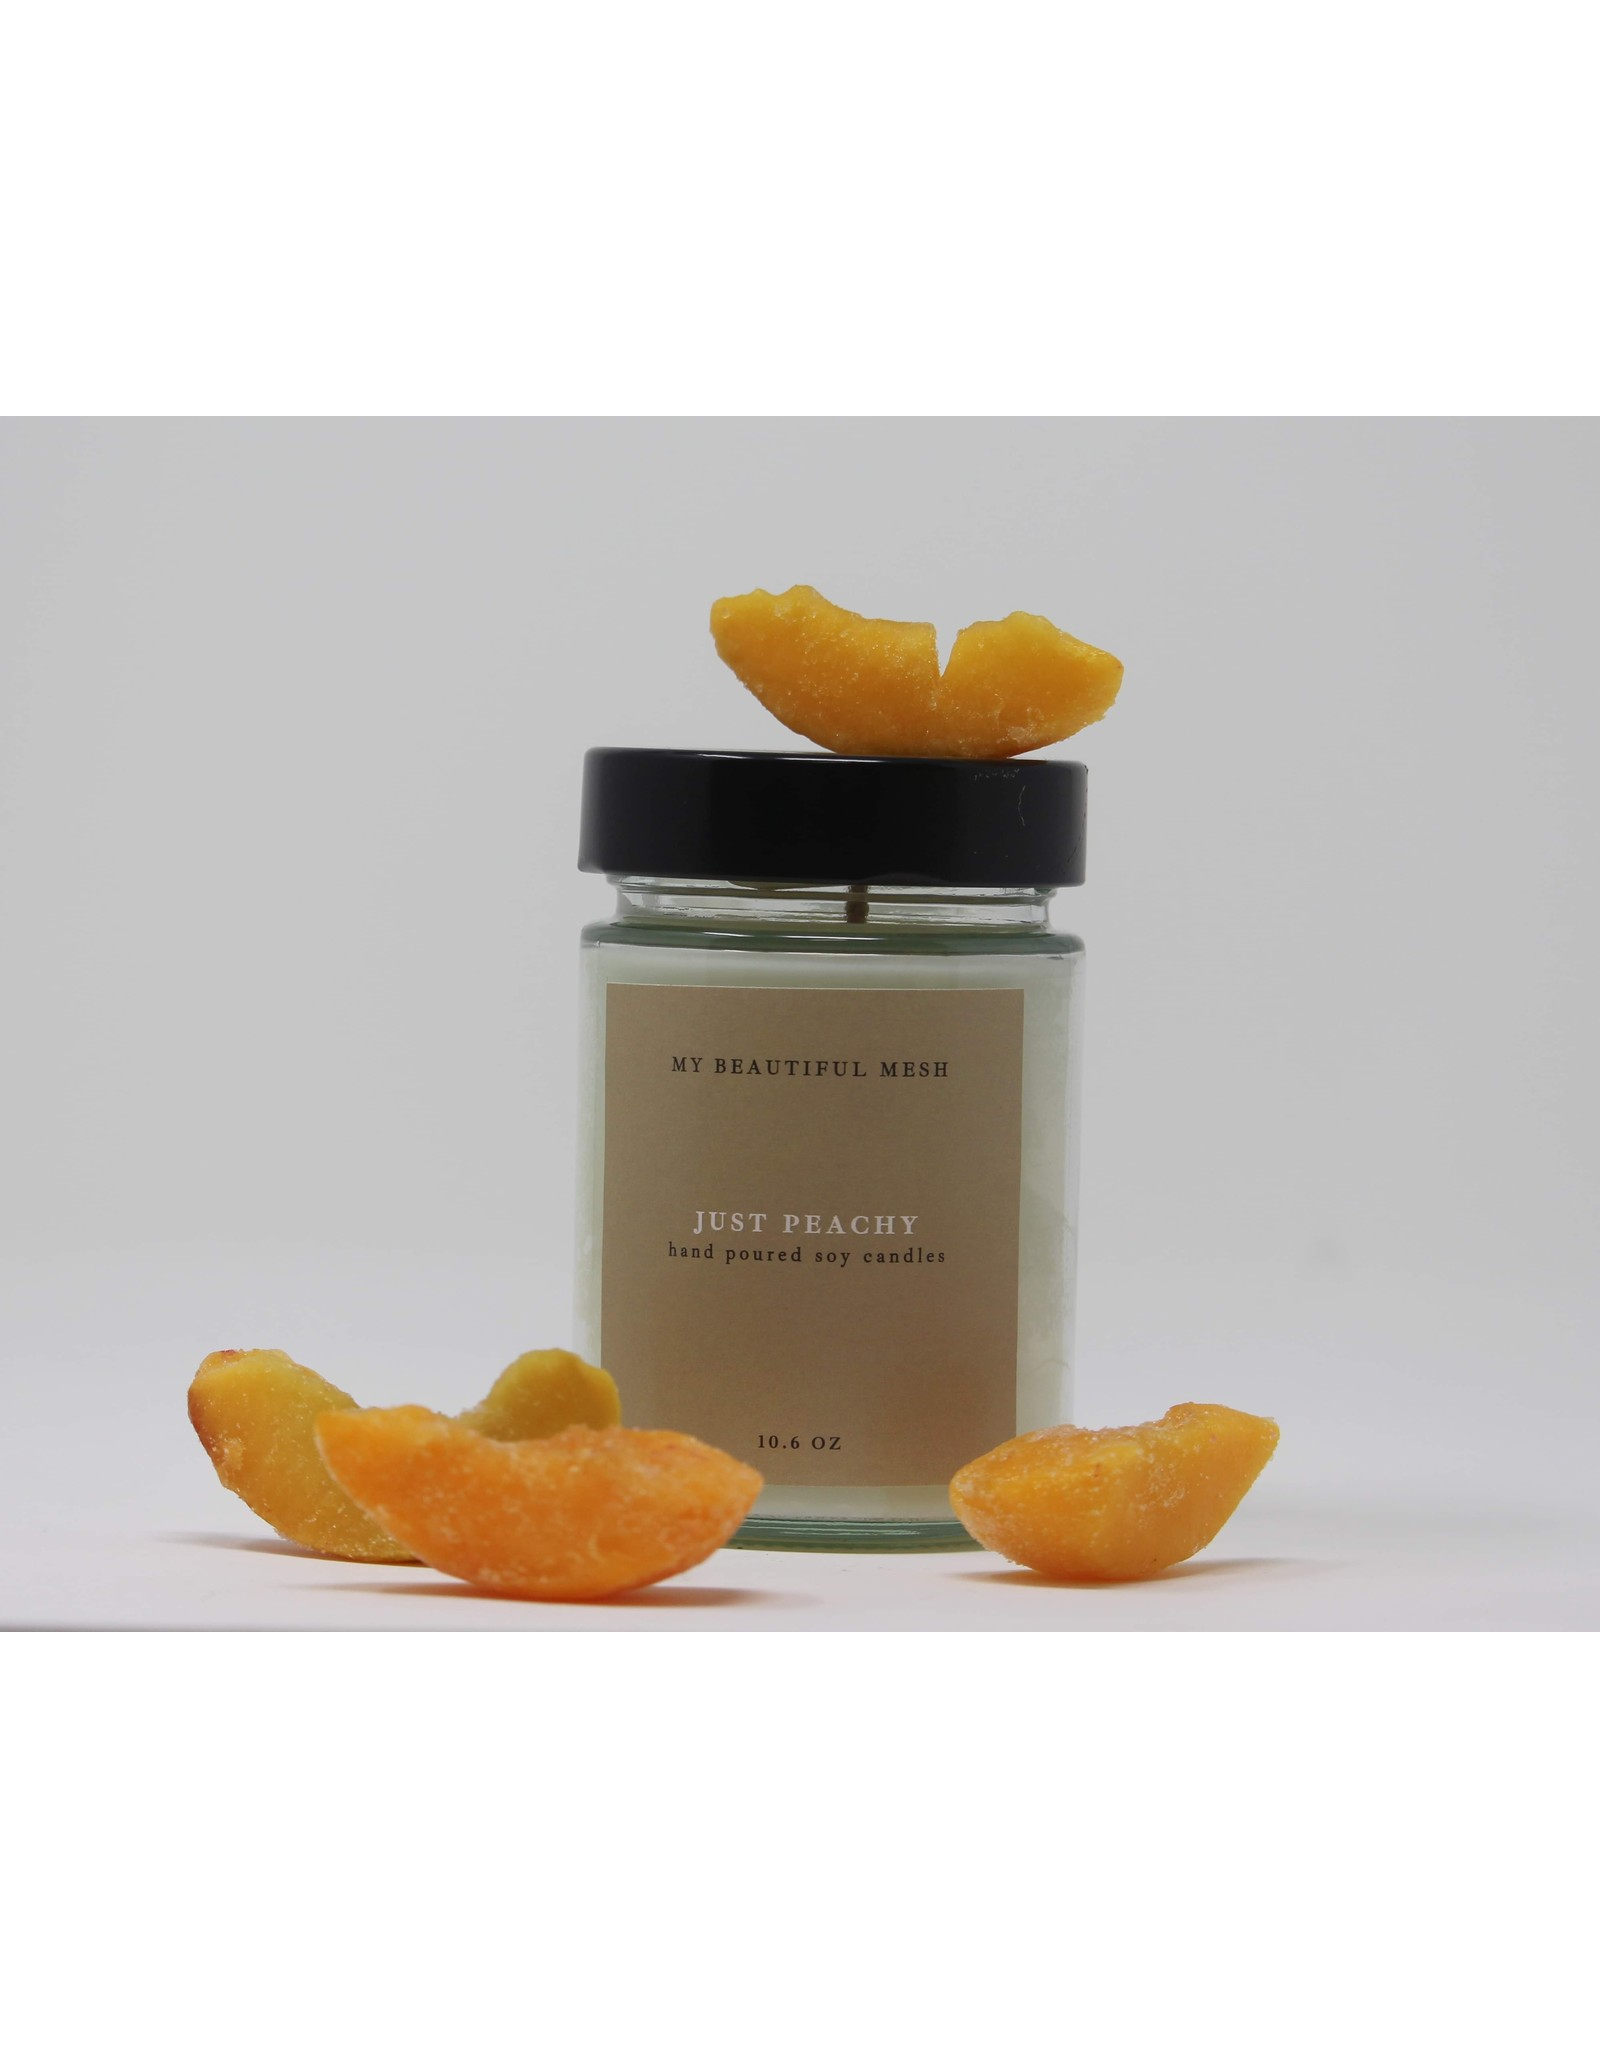 My Beautiful Mesh Just Peachy, Candle 10.6 oz (Summer Collection)